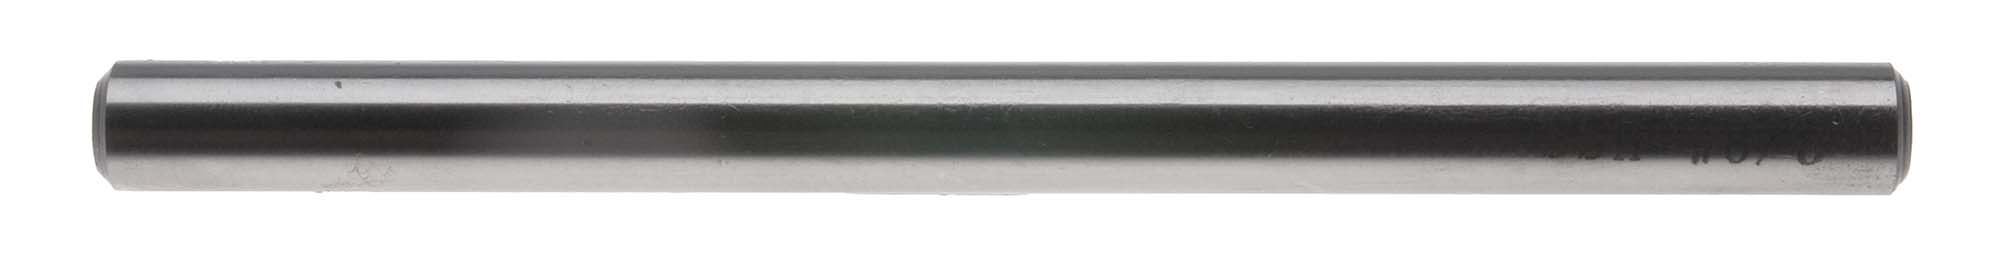 "#60 (.0400"") Jobber Length Drill Blank, High Speed Steel"